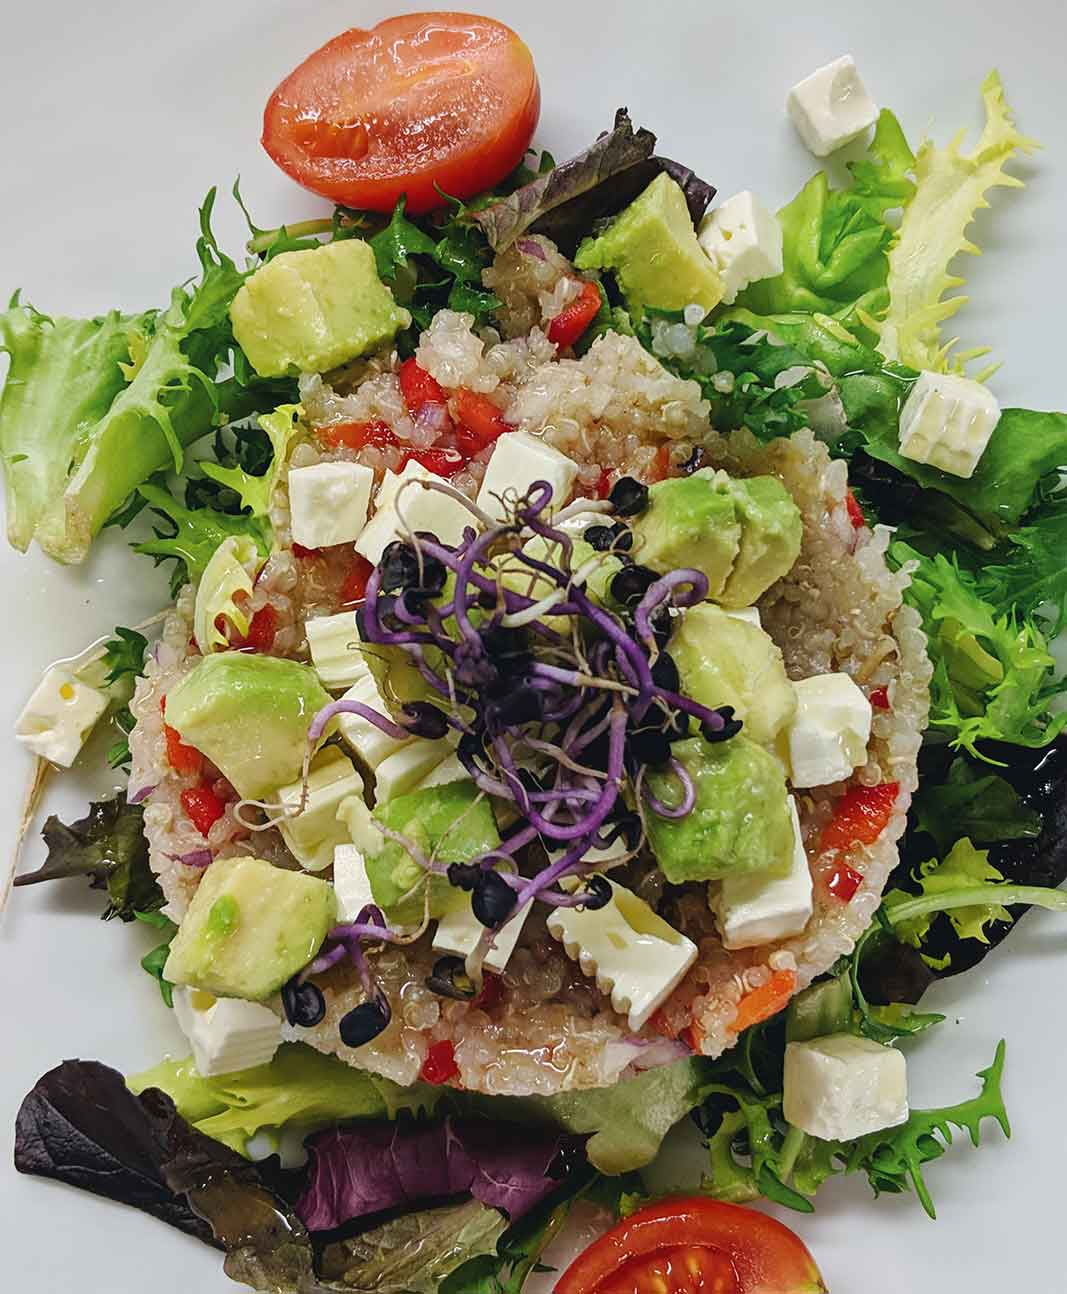 Quinoa salad with avocado and feta cheese